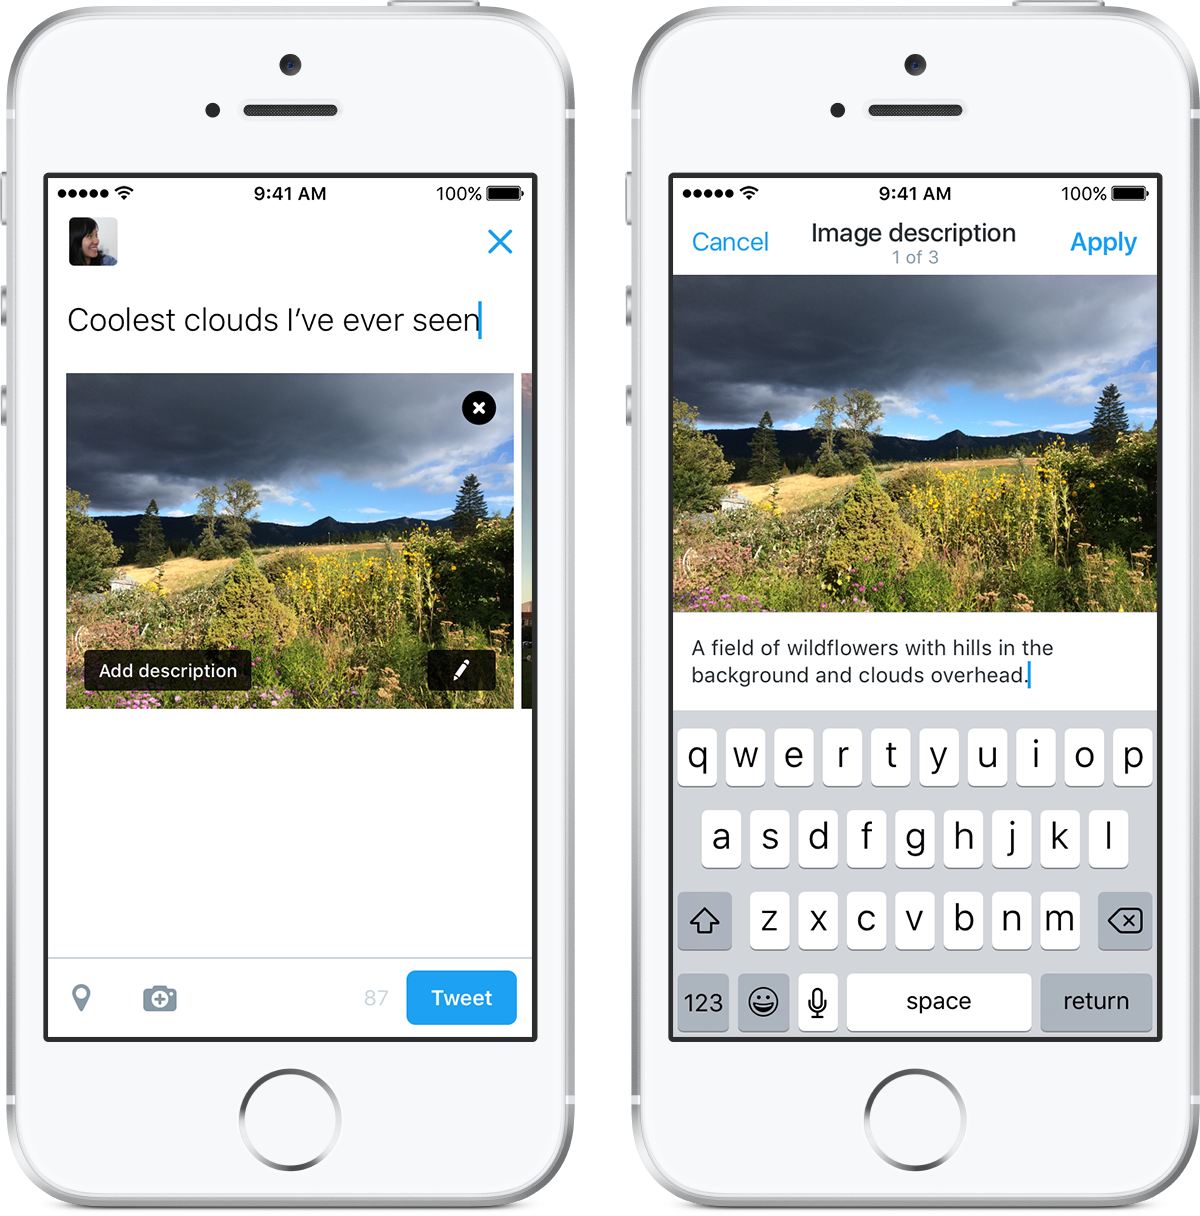 Twitter Adds Alt-Text Image Descriptions to Extend Tweet Accessibility | Social Media Today